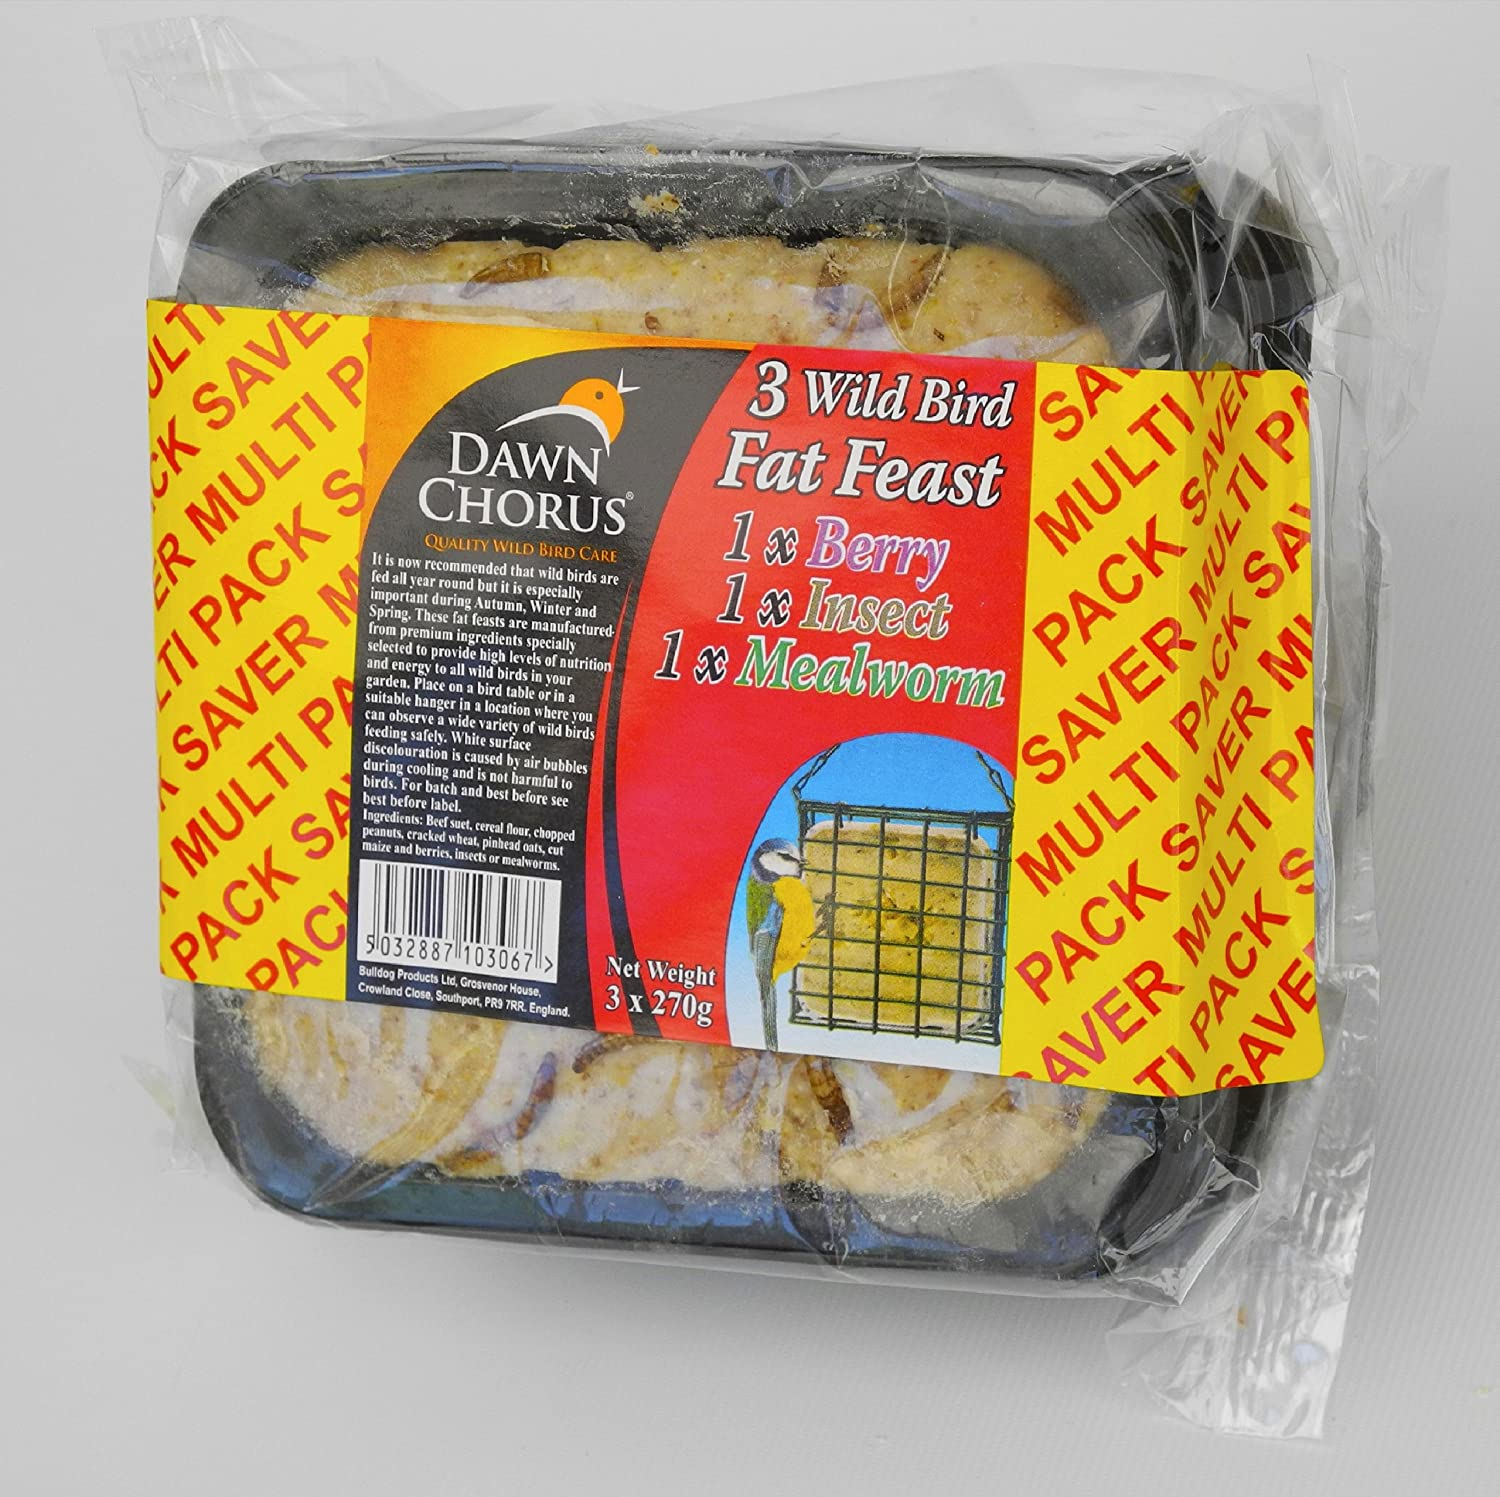 Dawn Chorus 48 Pack Fat Feast For Wild Birds With Mealworms, Berries and Insects Flavours Twootz cake065